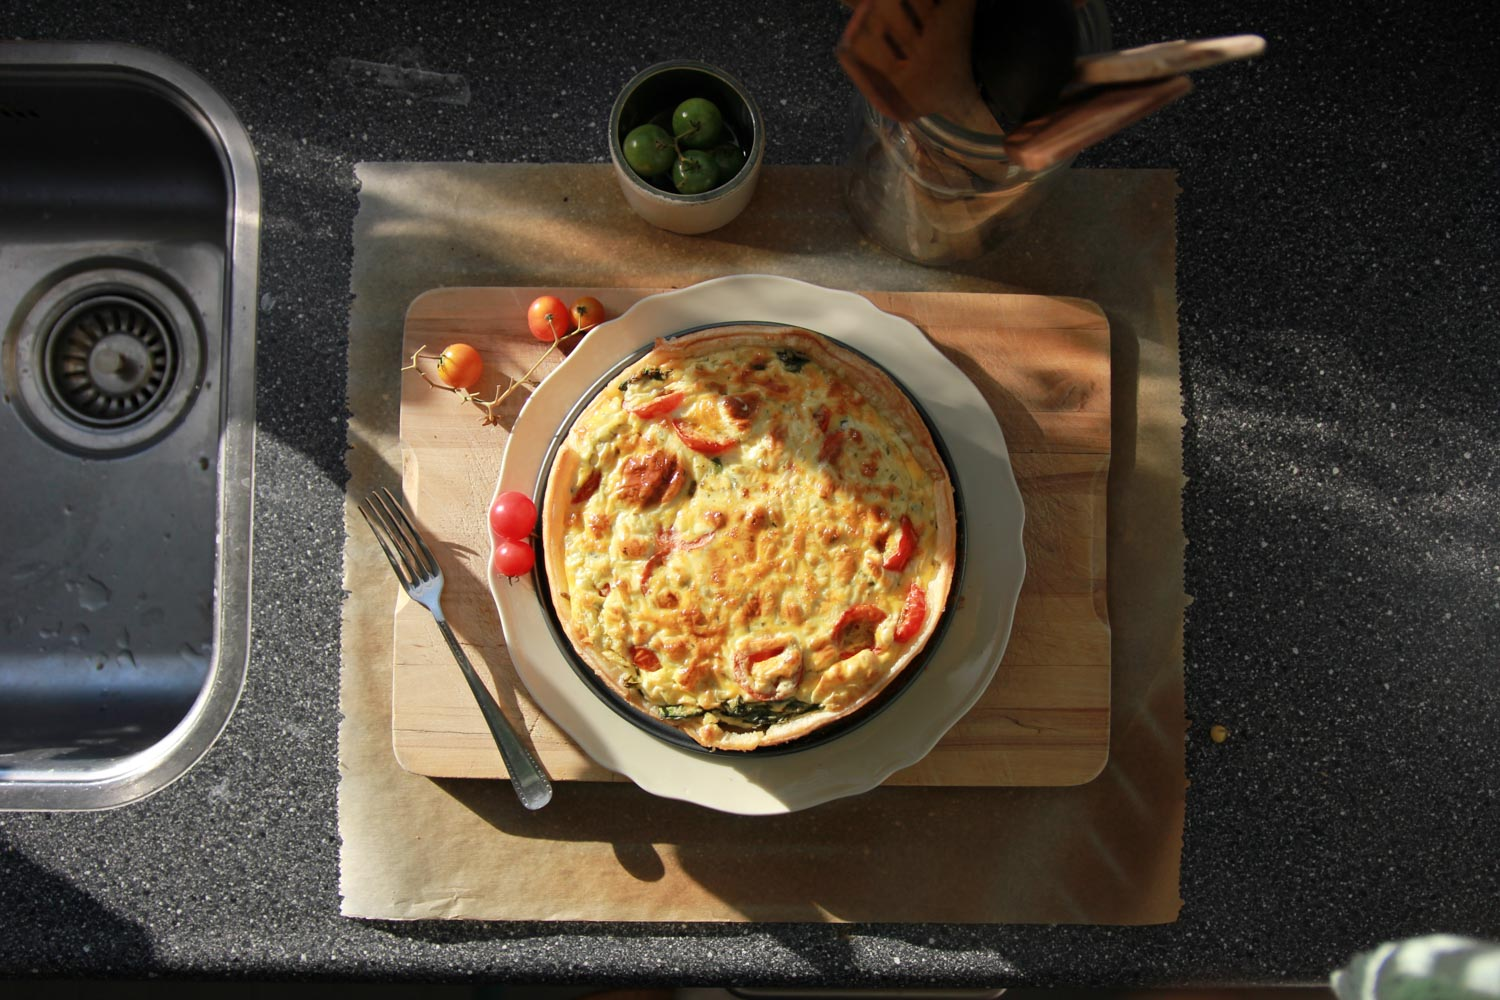 Traditional French cuisine, Quiche Lorraine on a cutting board in the sunshine.